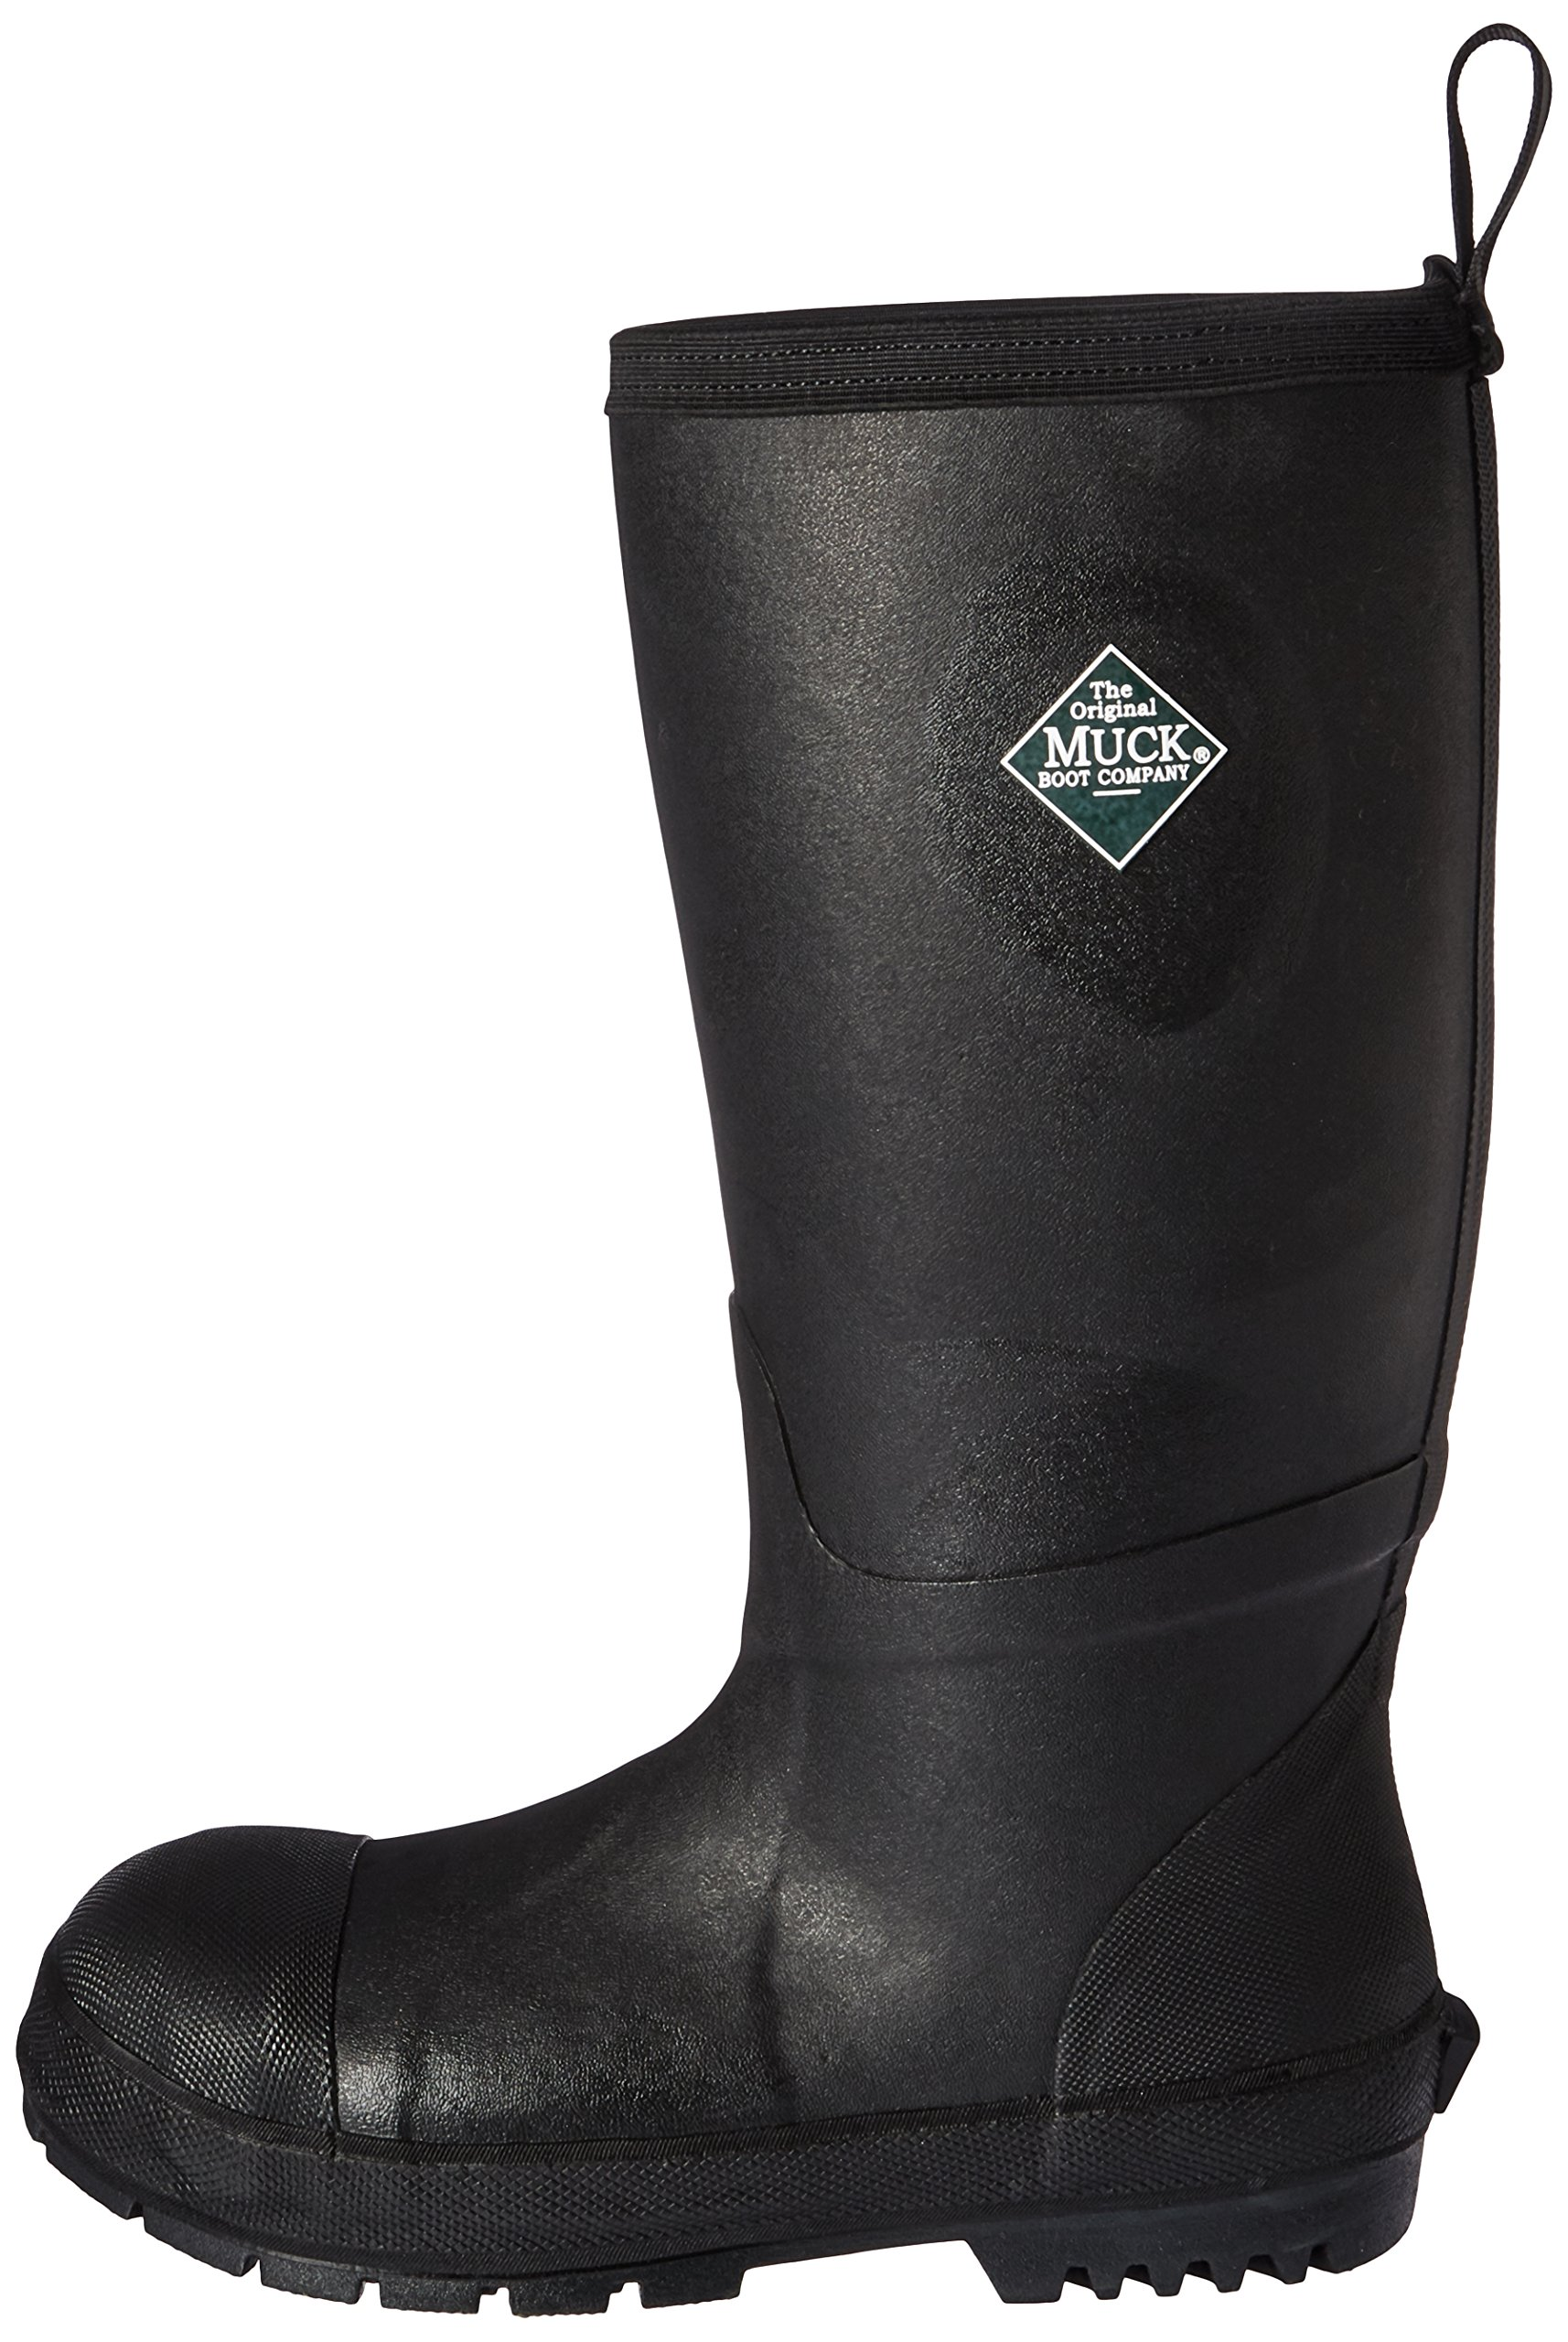 Muck Boot Men's Chore Resistant Tall Steel Toe Work Boot, Black, 10 US/10-10.5 M US by Muck Boot (Image #5)